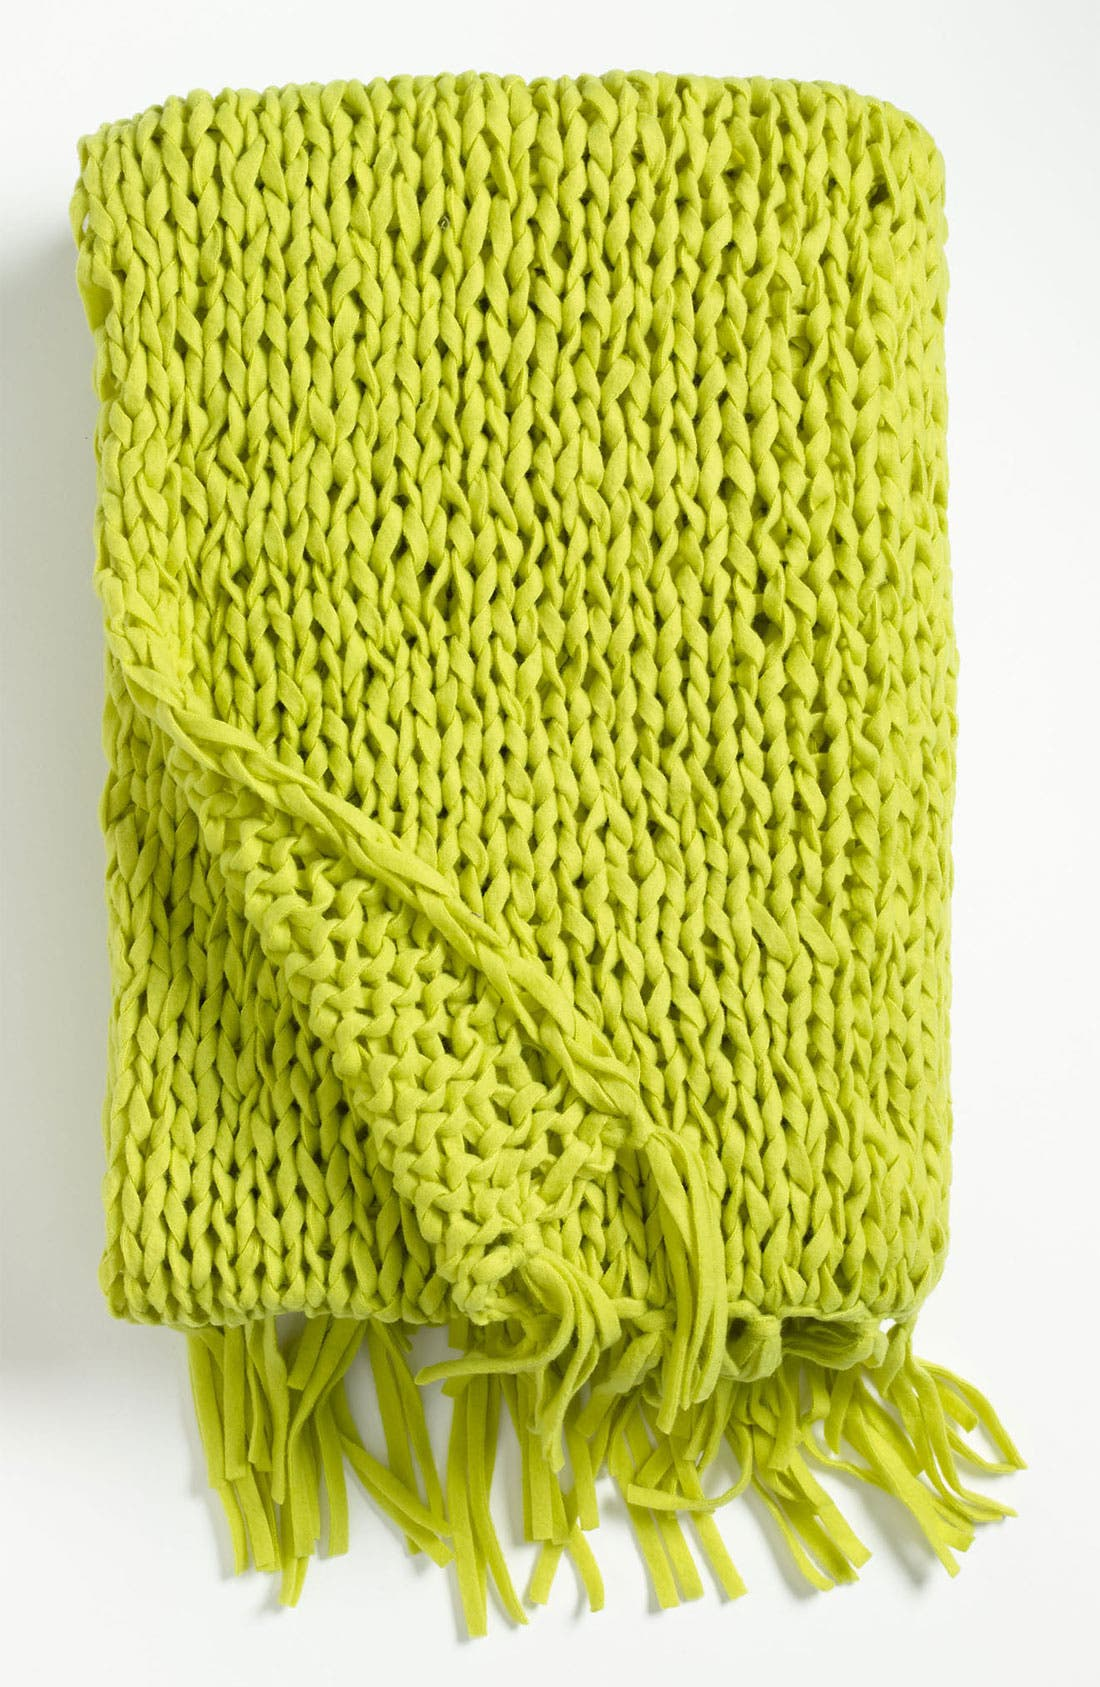 Main Image - Nordstrom at Home 'Netting' Knit Throw